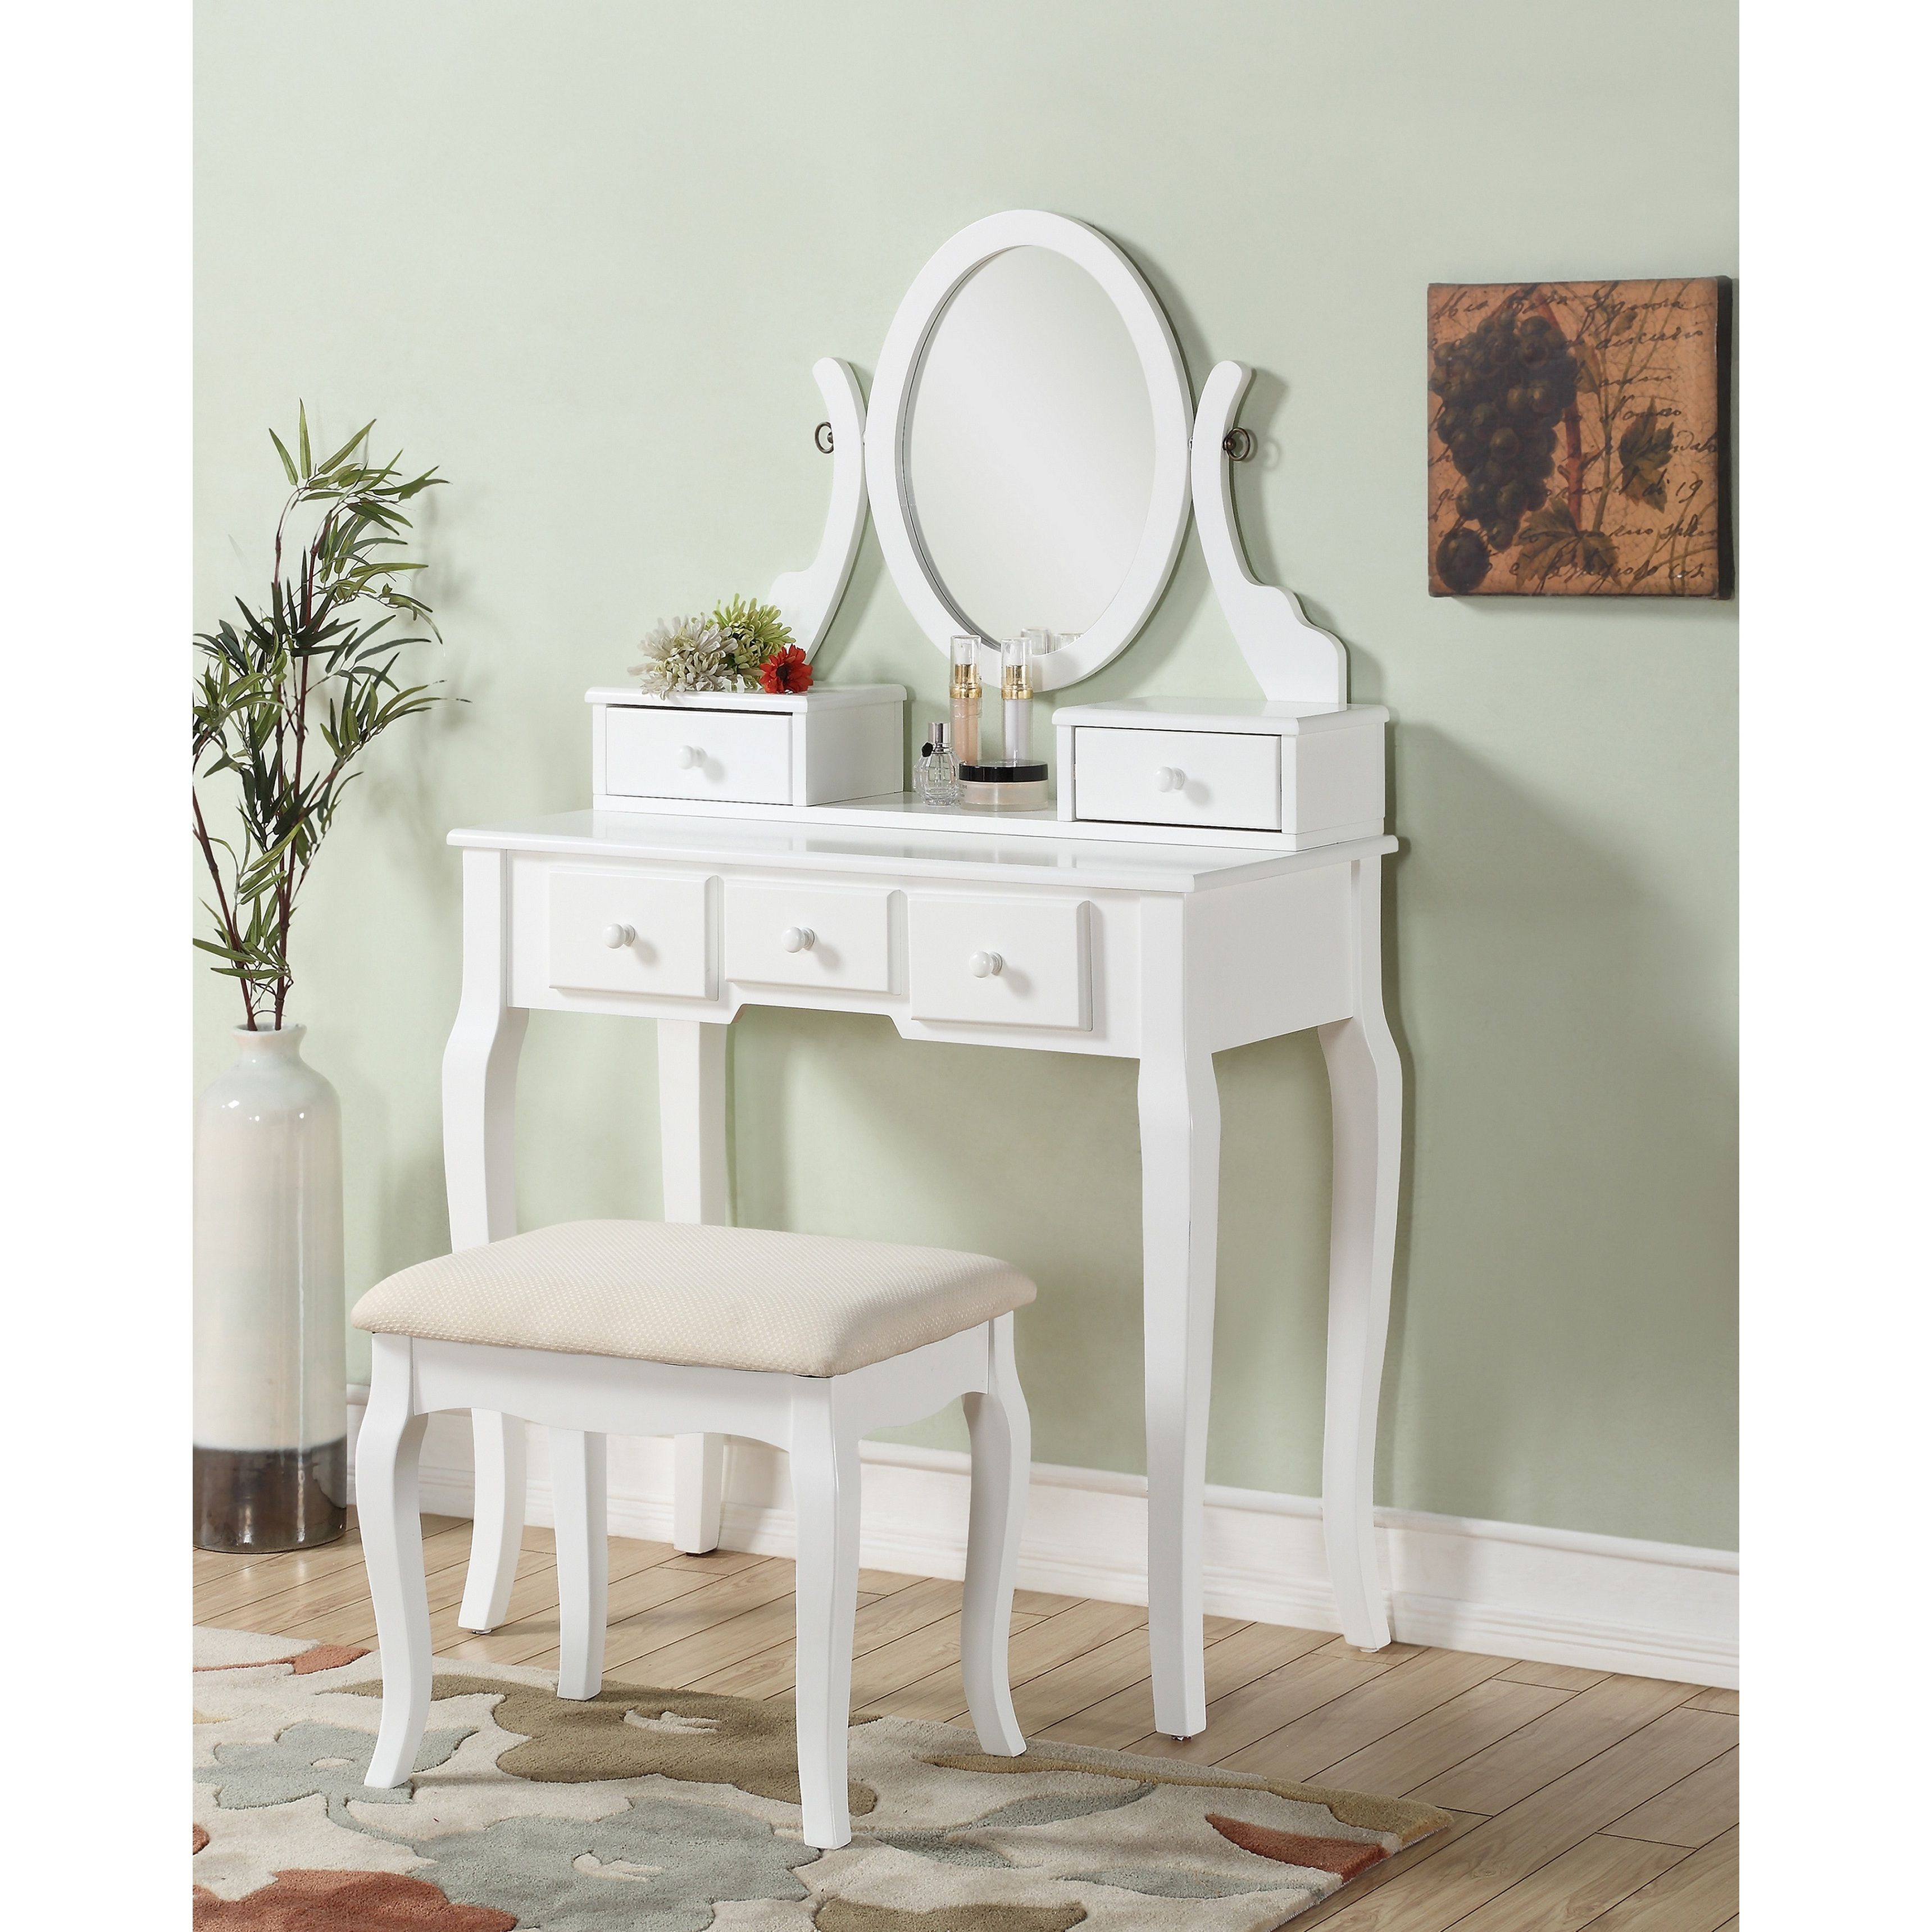 Vanity Table And Stool Set Maison Rouge Alice Wood Makeup Vanity Table And Stool Set